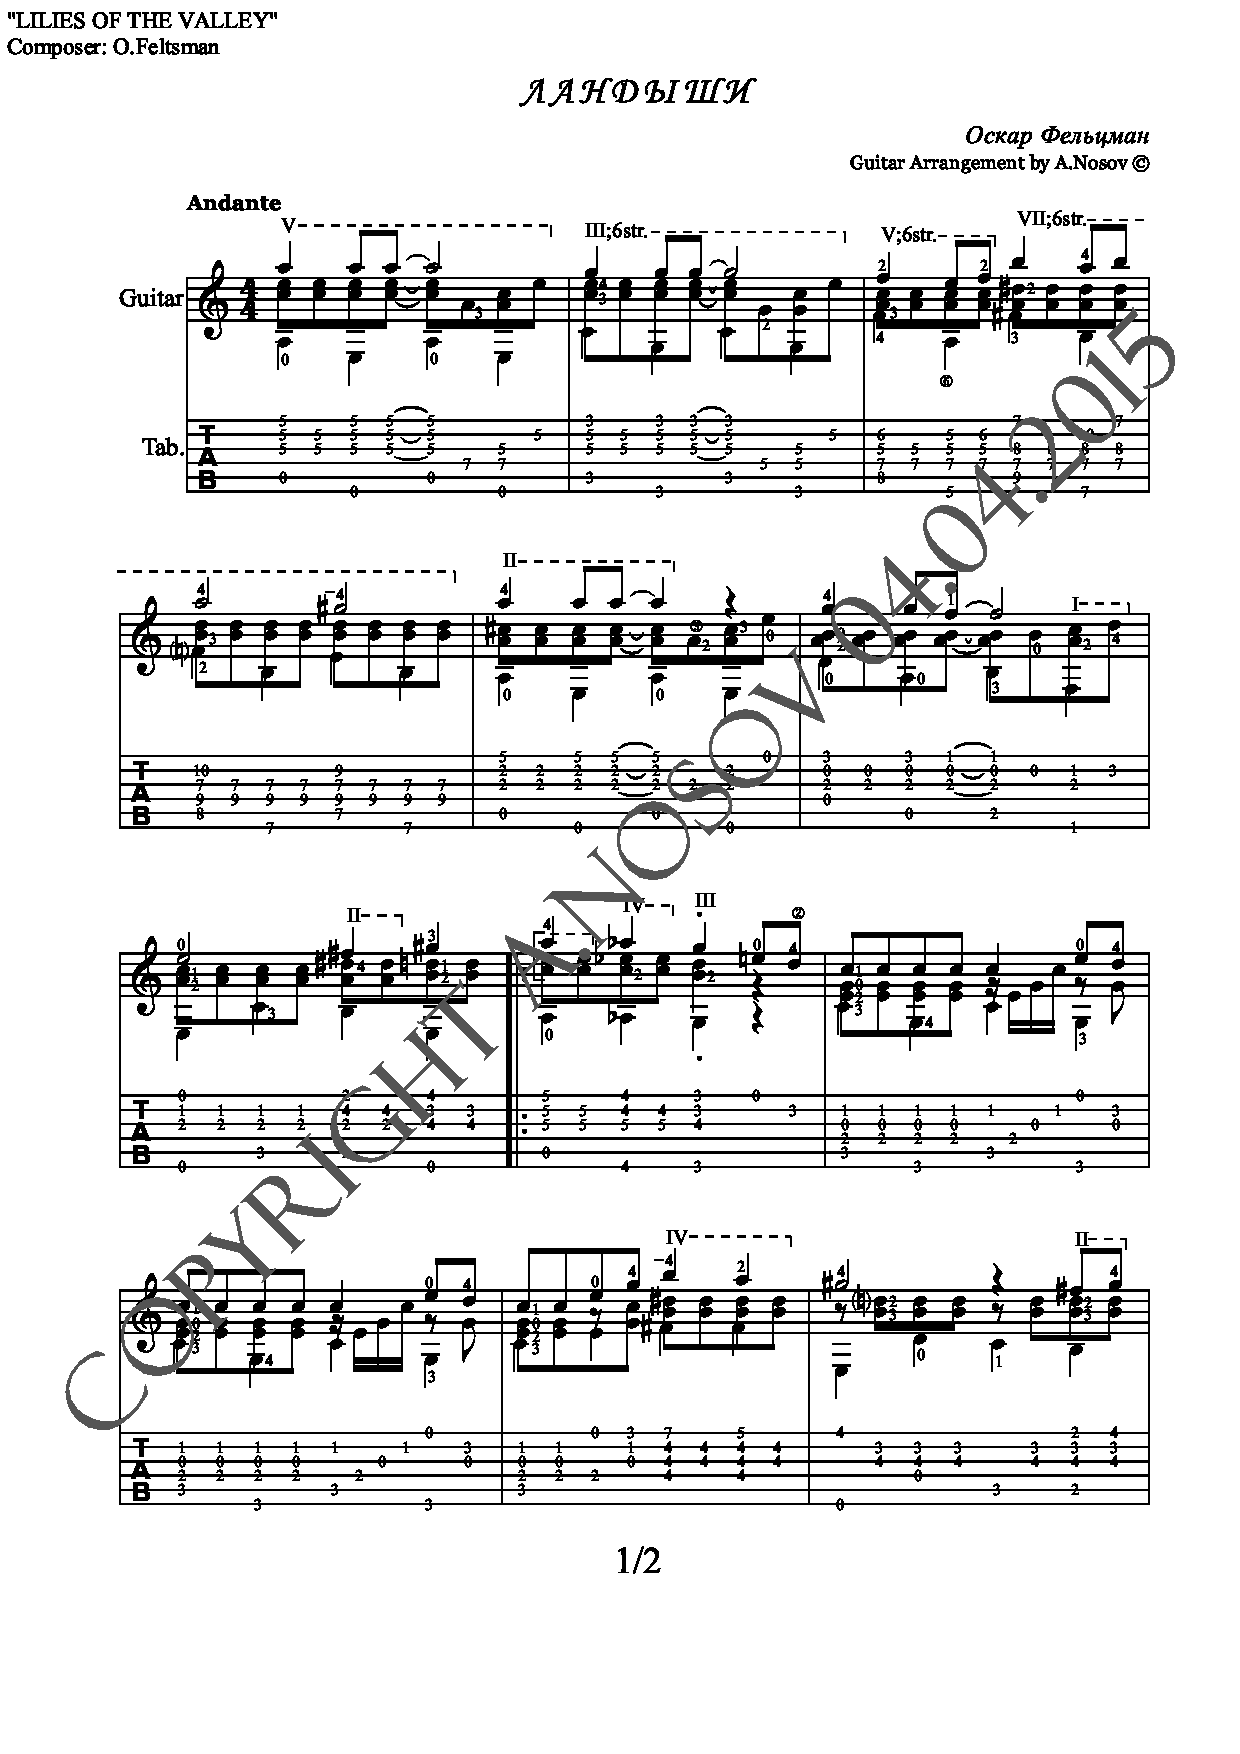 Lilies of the Valley (Sheet music and tabs for guitar)